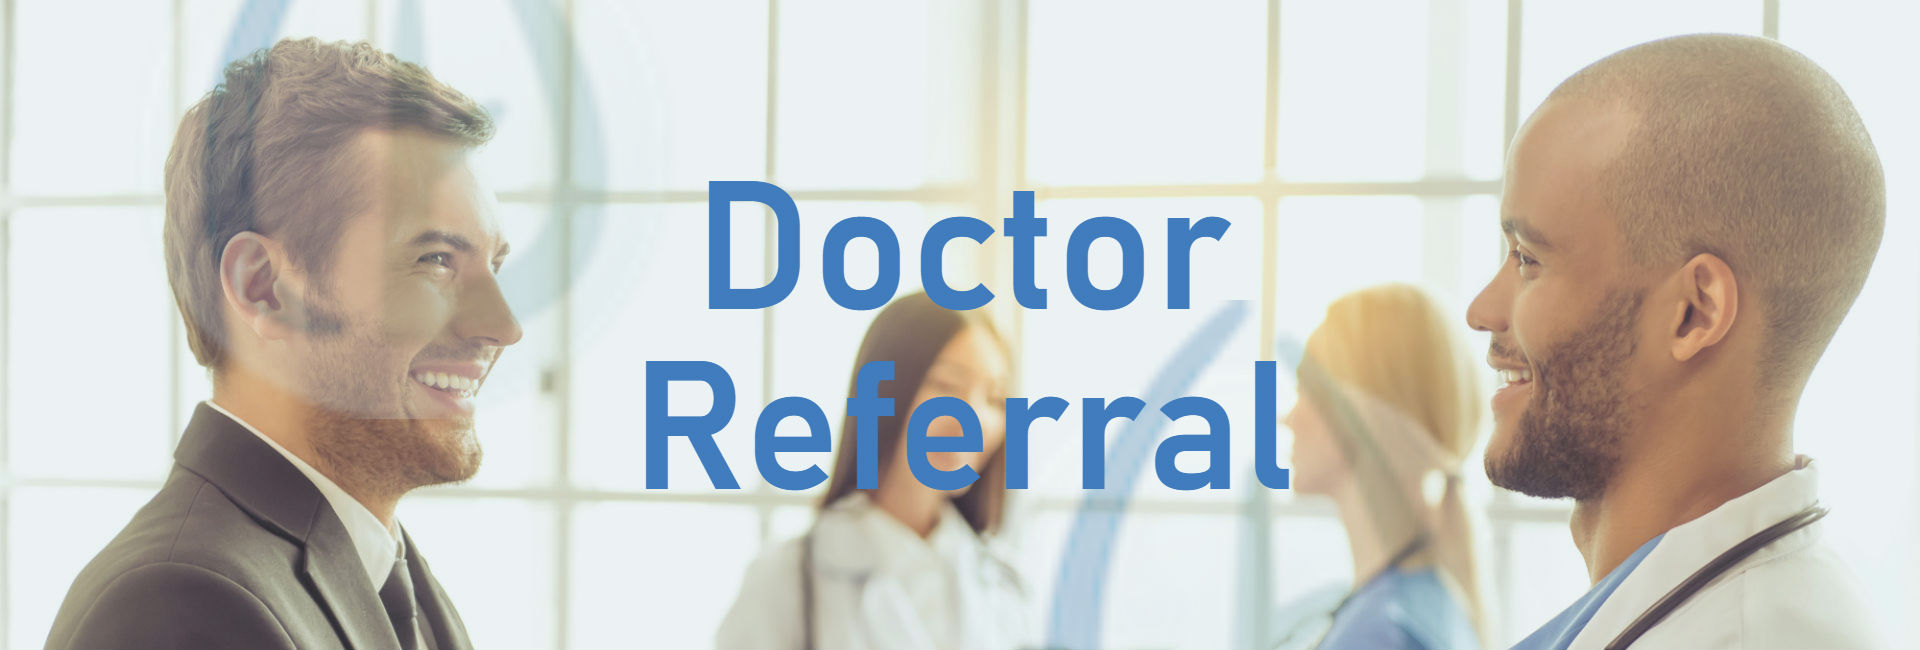 doctor referral banner